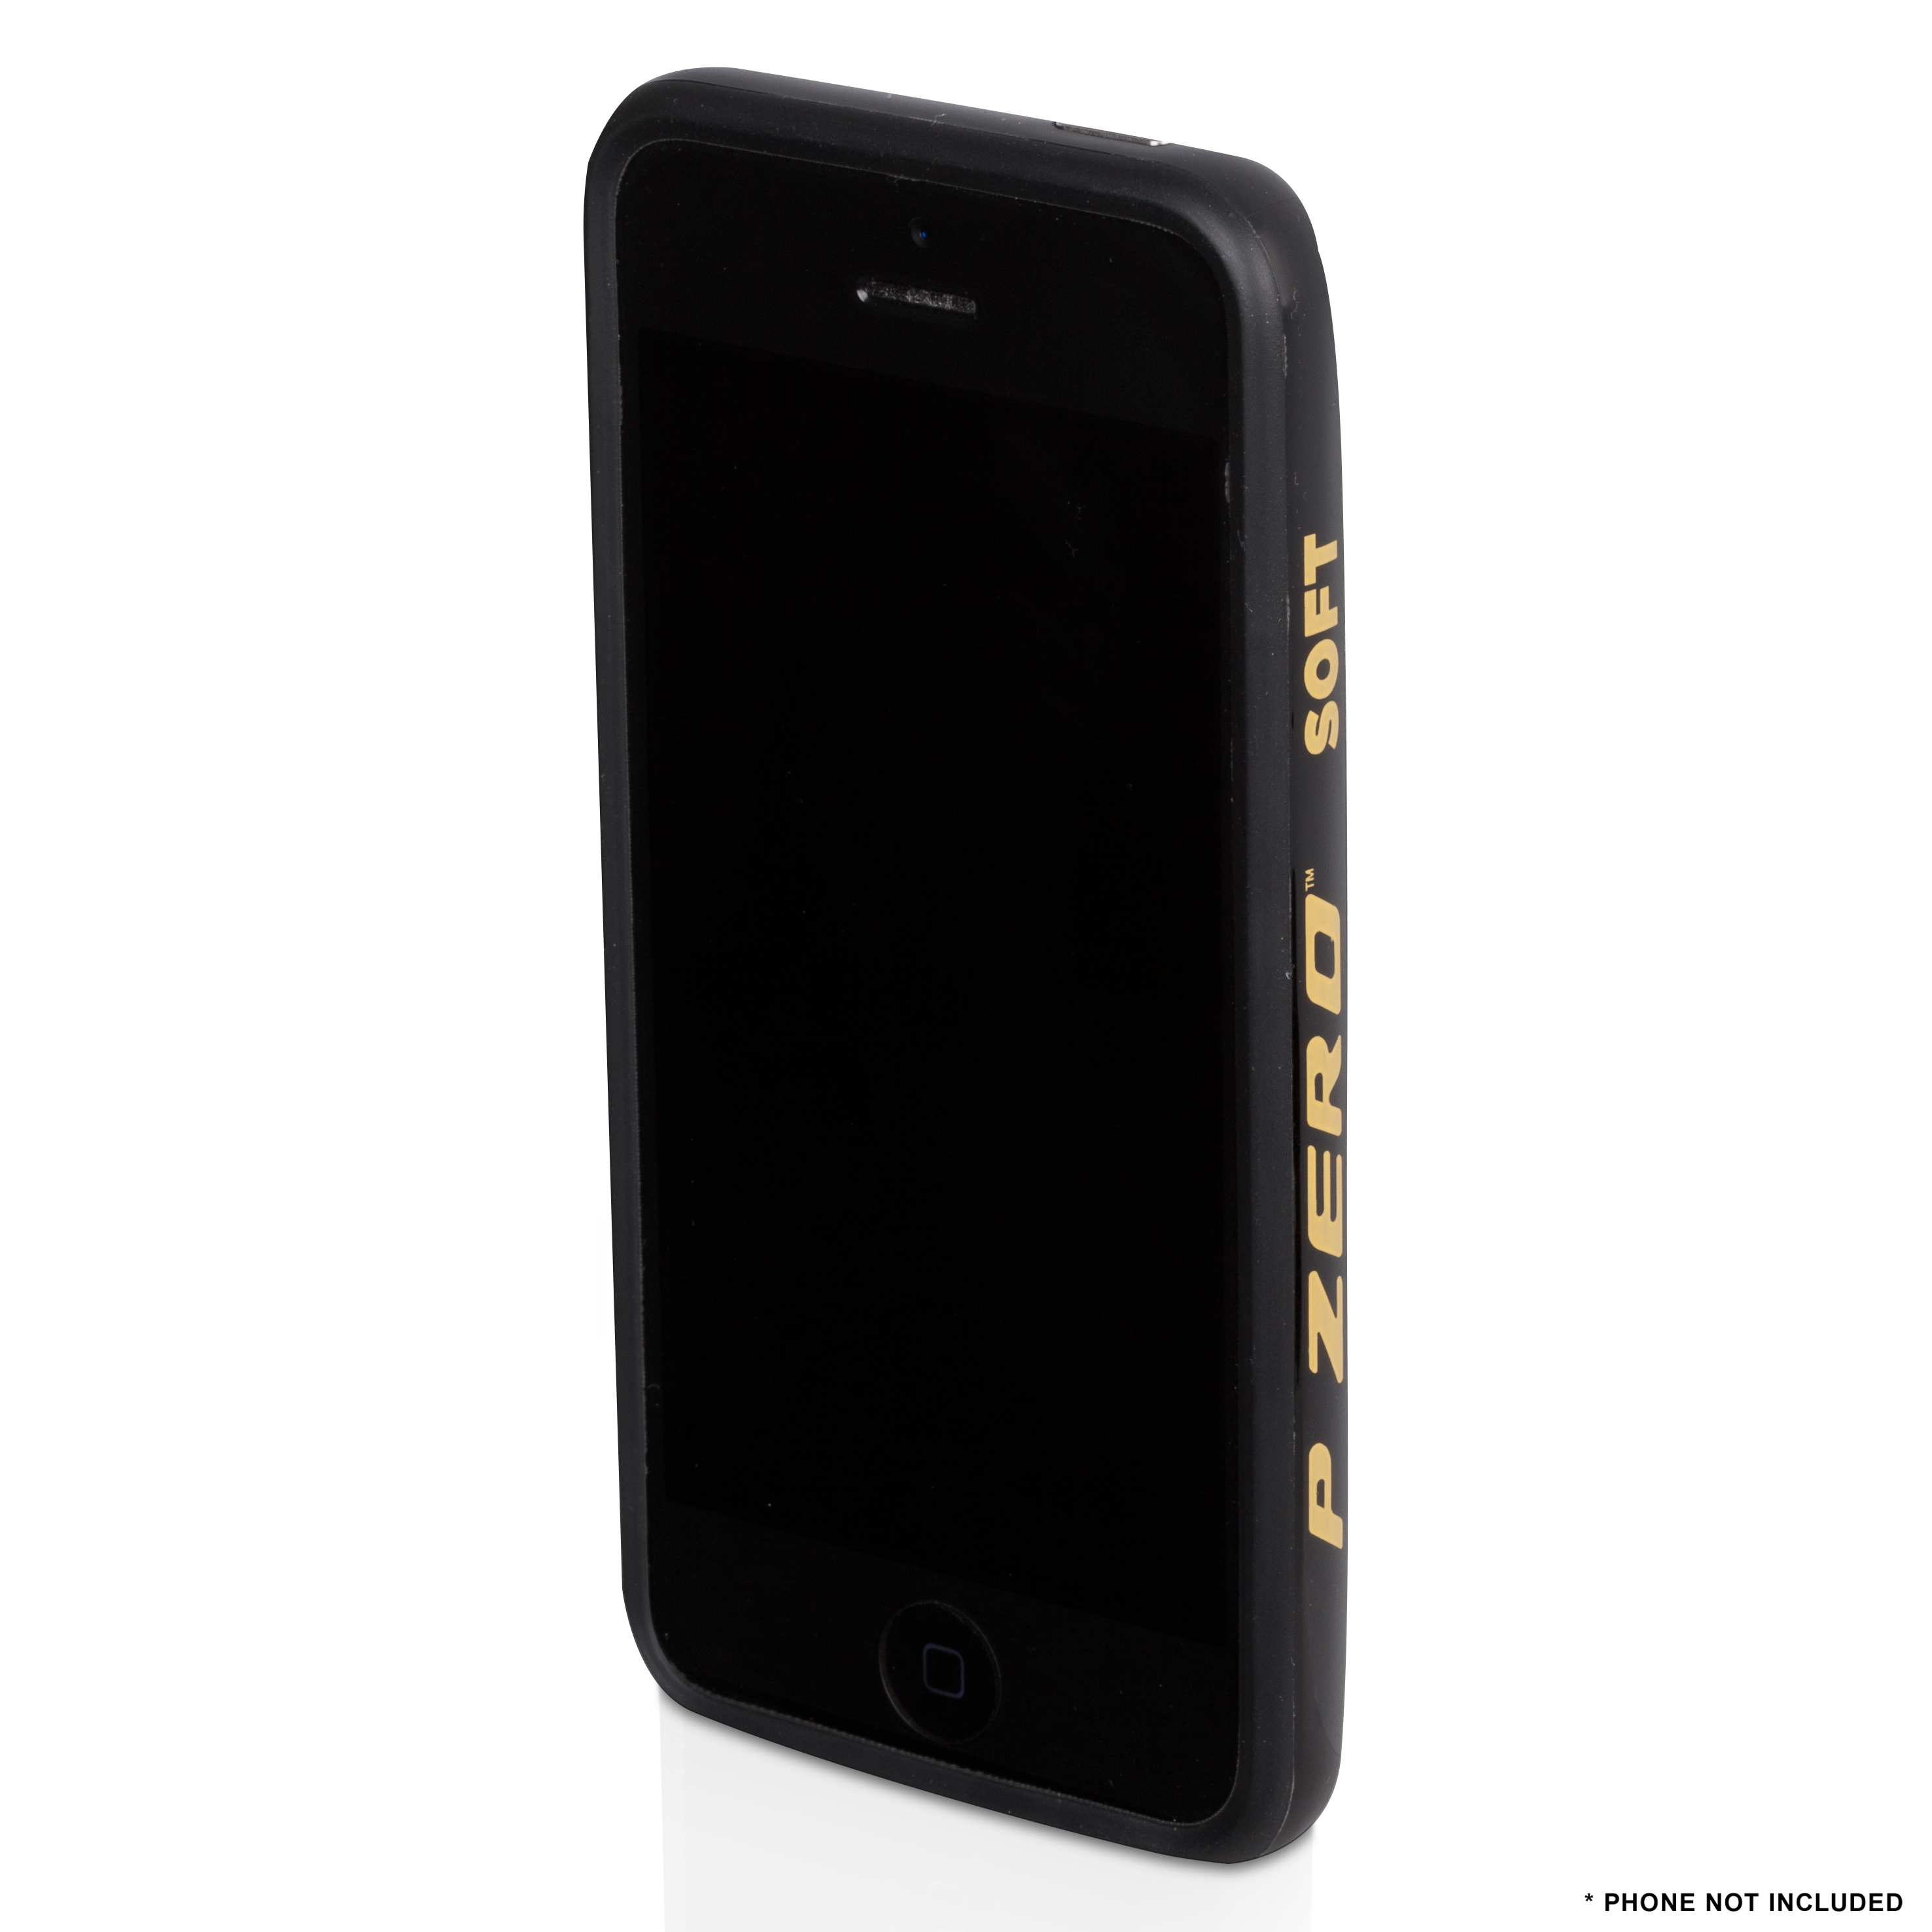 Pirelli Pzero Soft iPhone 5 Bumper